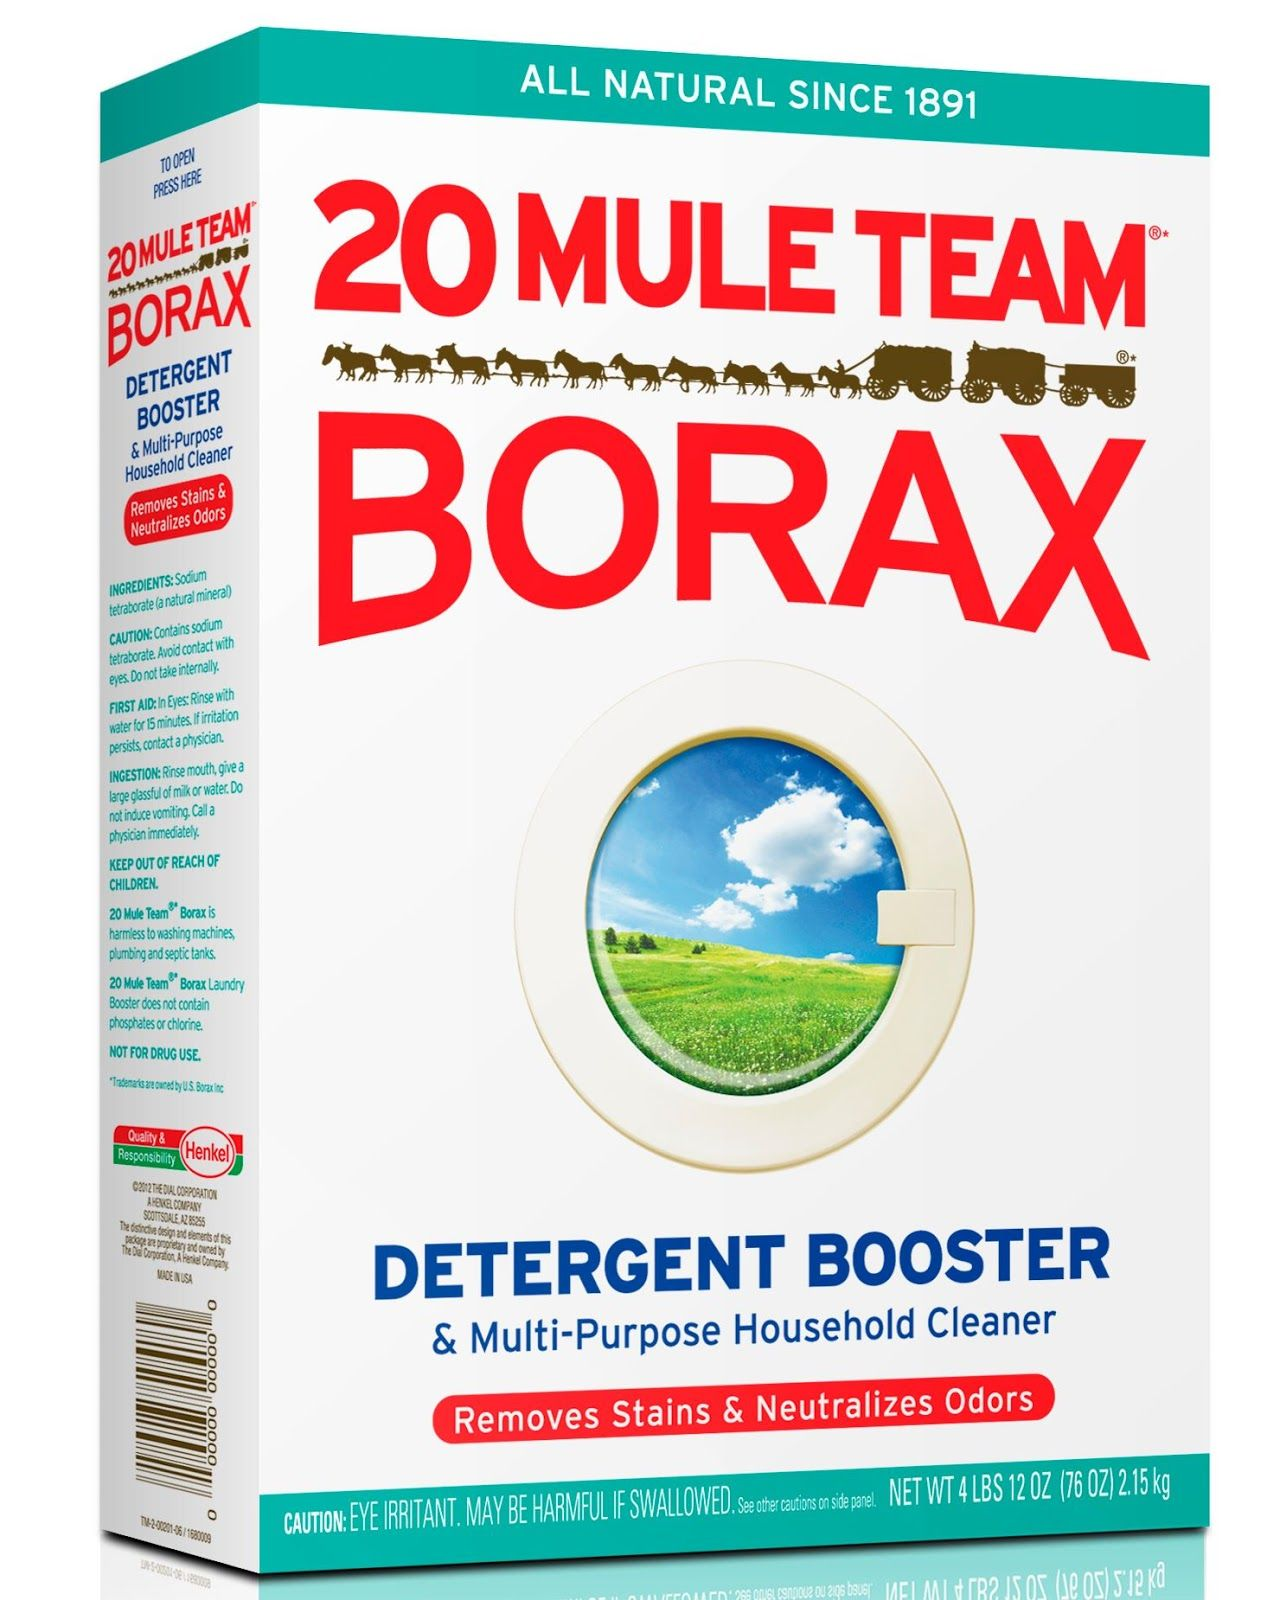 Best Thing For Keeping Fleas Away Vacuum Carpet Put Boax In A Bucket Break Up Any Small Clumps And With A Gl Borax Laundry Homemade Dishwasher Detergent Borax Uses